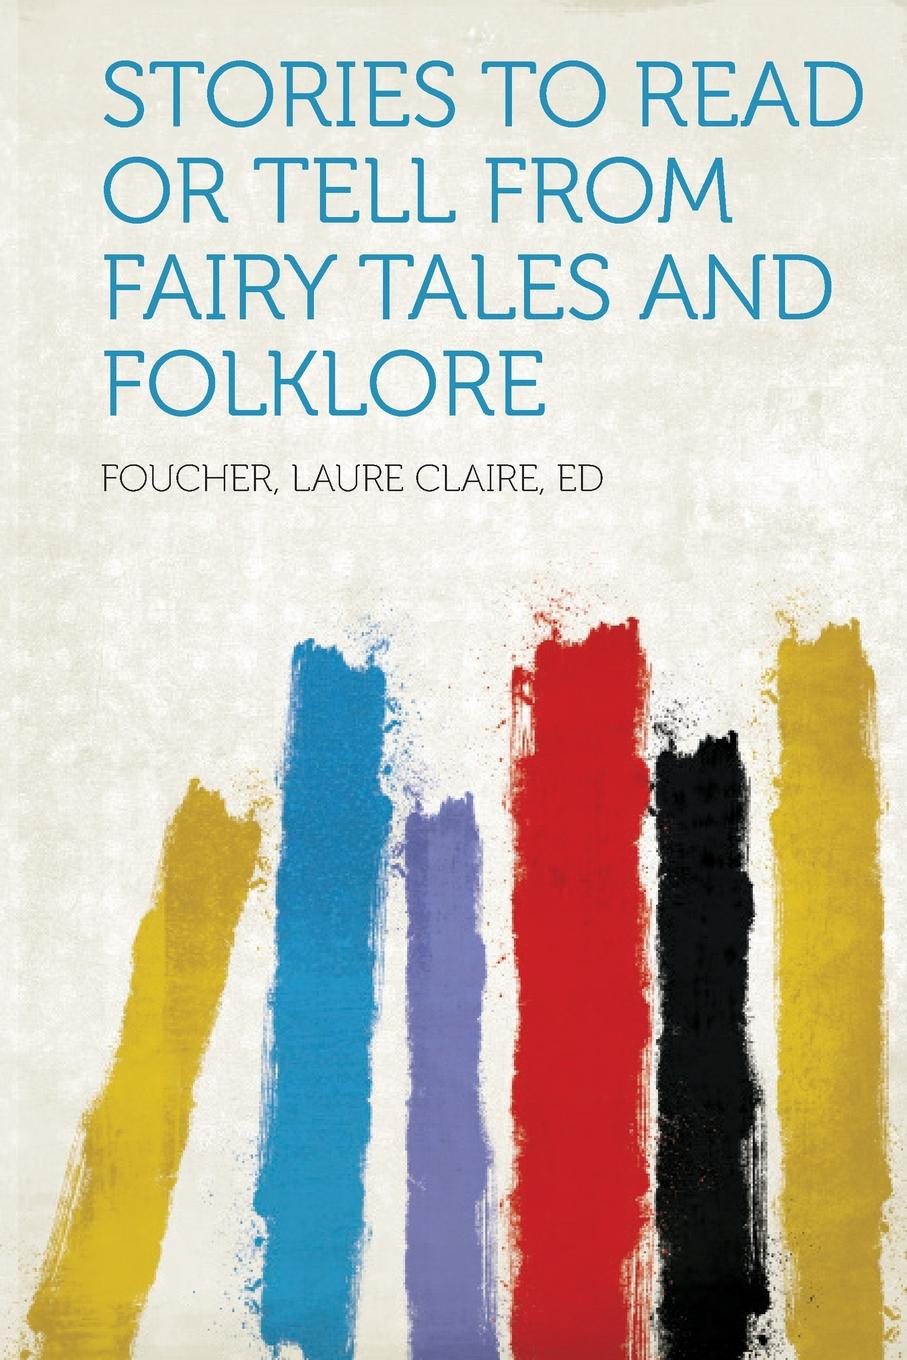 Stories to Read or Tell from Fairy Tales and Folklore